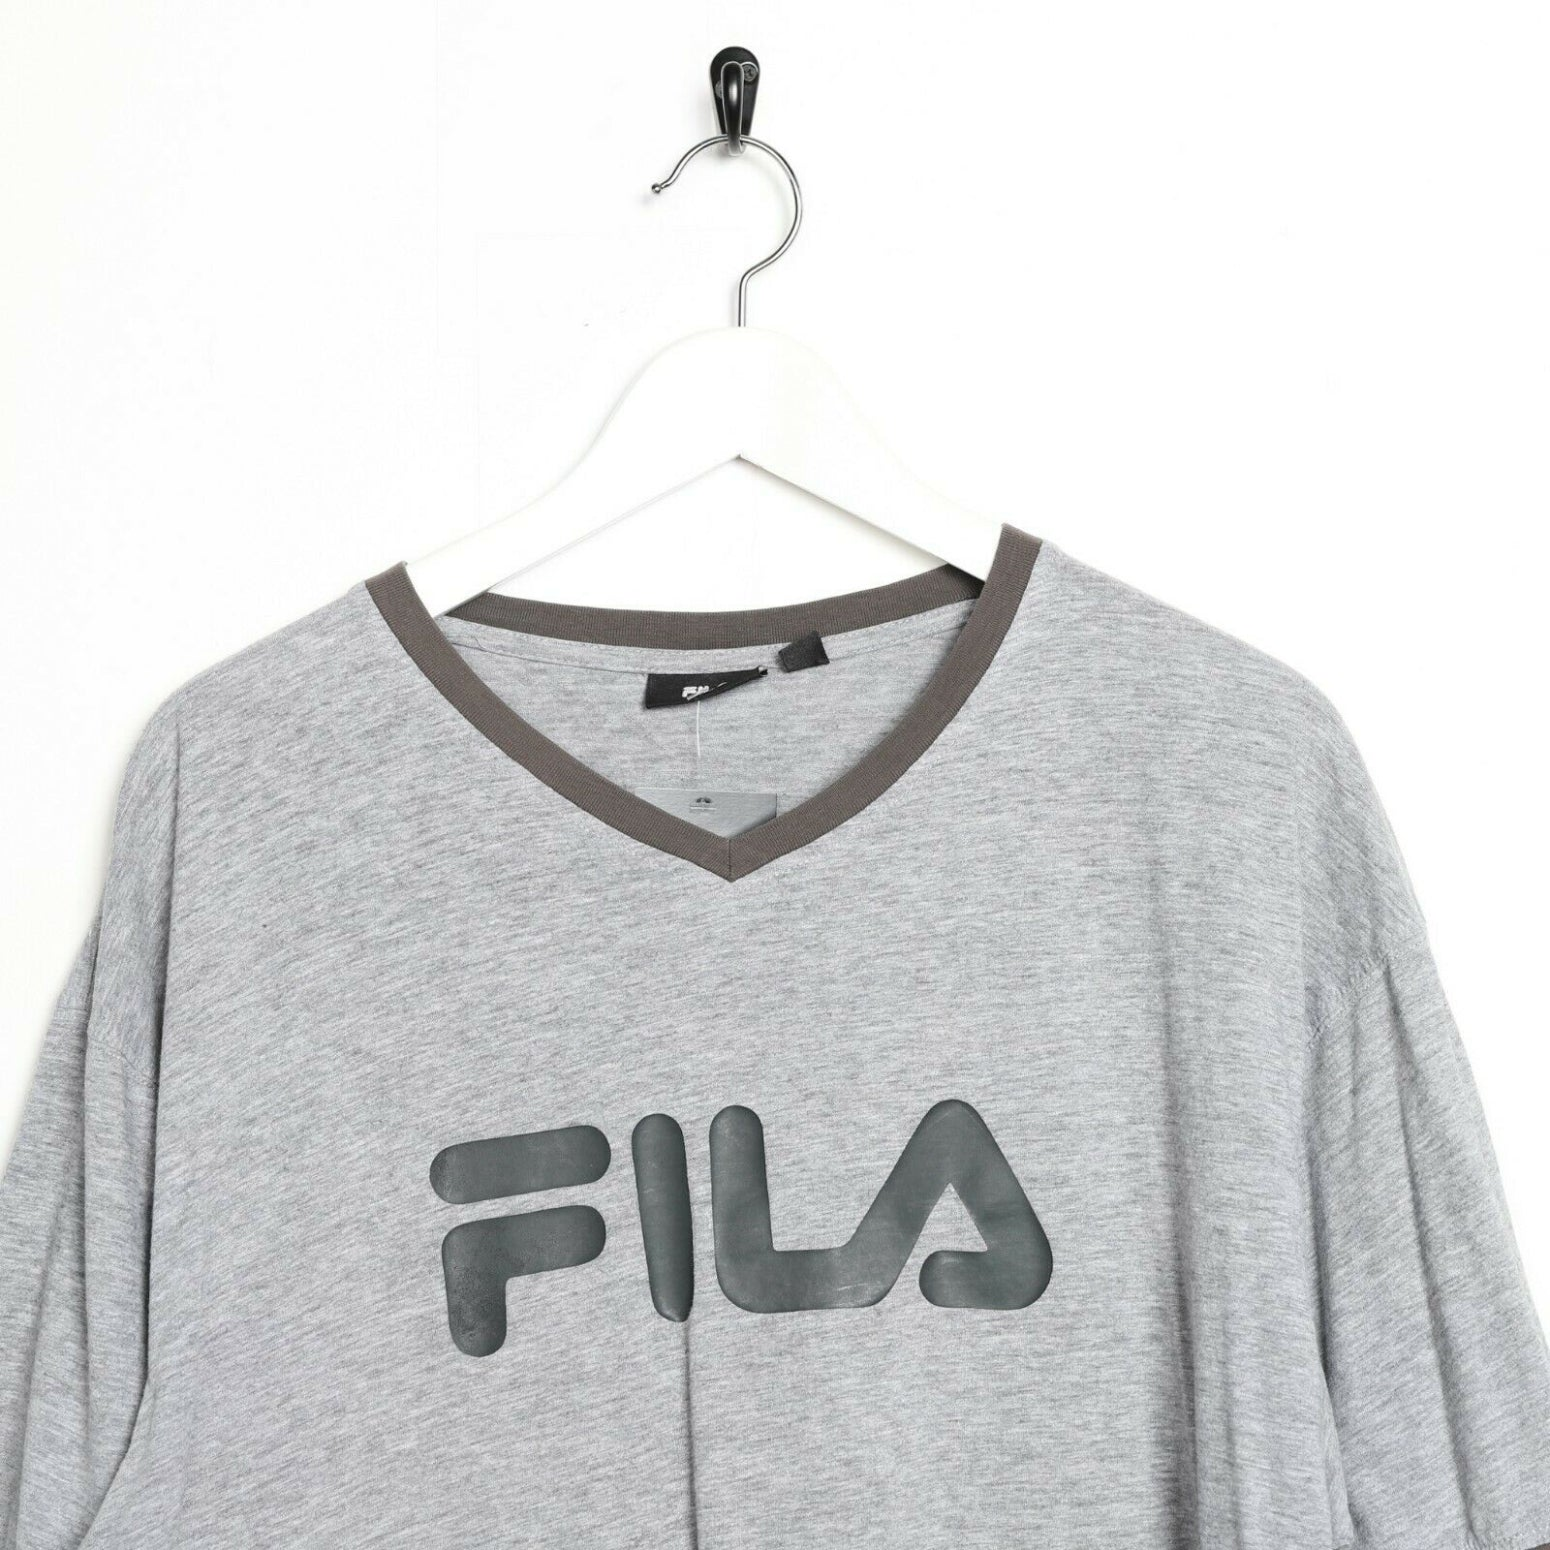 Vintage FILA Big Logo T Shirt Tee Grey 2XL